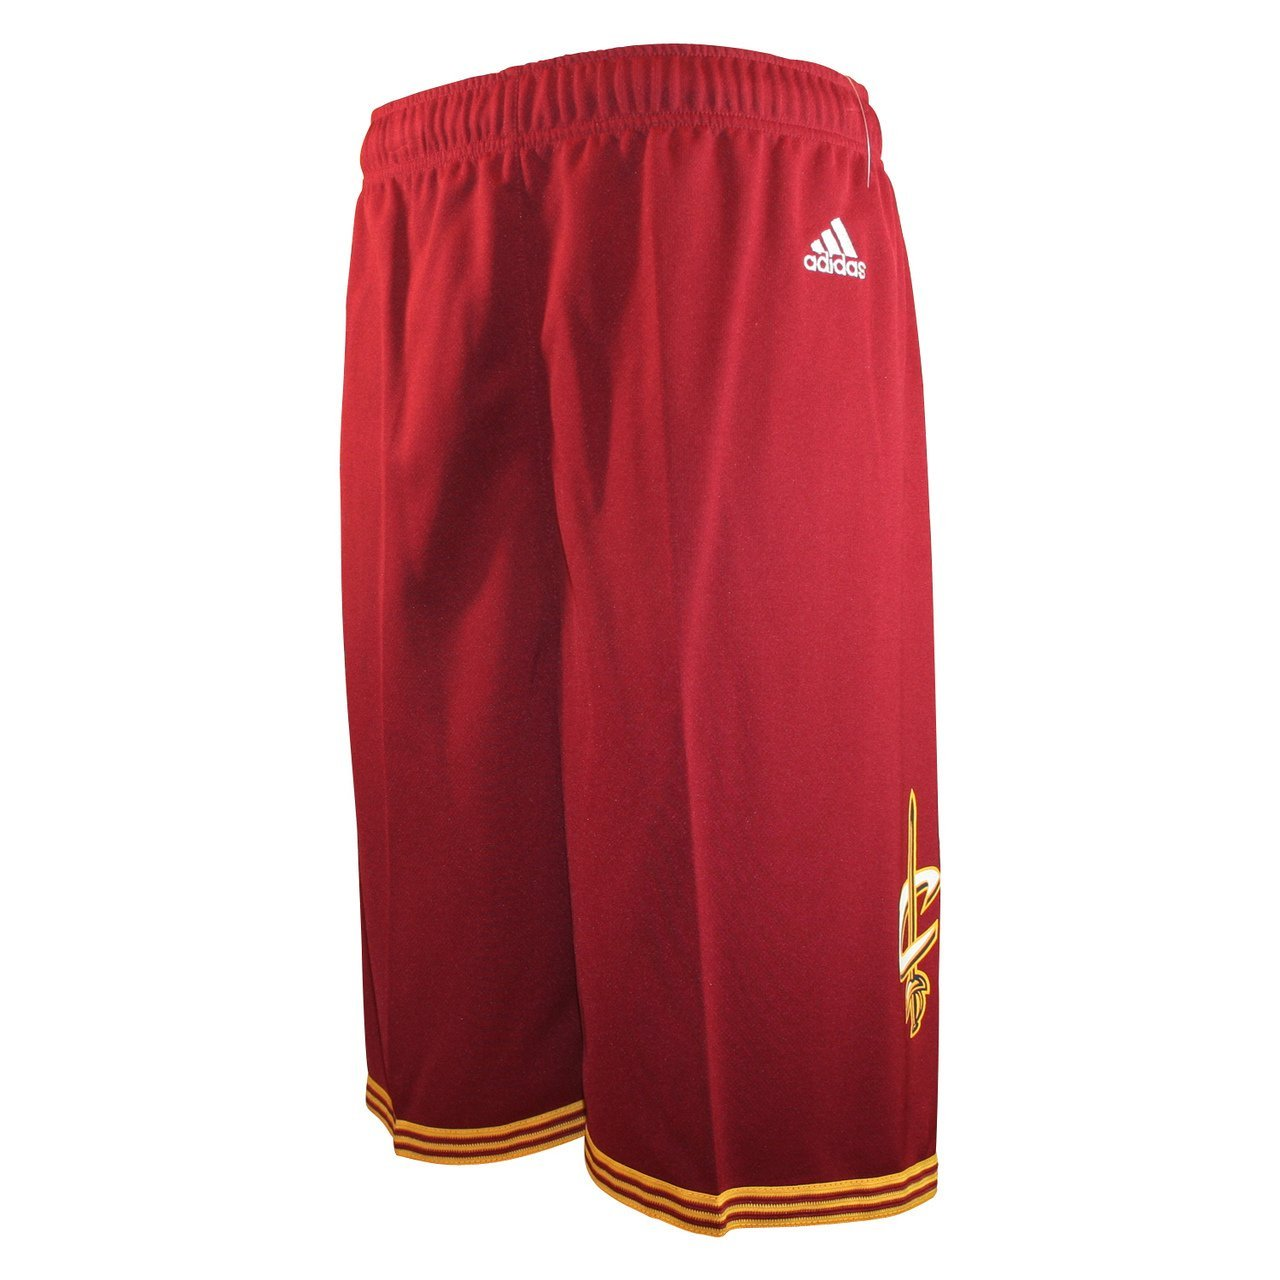 Cleveland Cavaliers Toddler Replica Basketball Shorts - Maroon